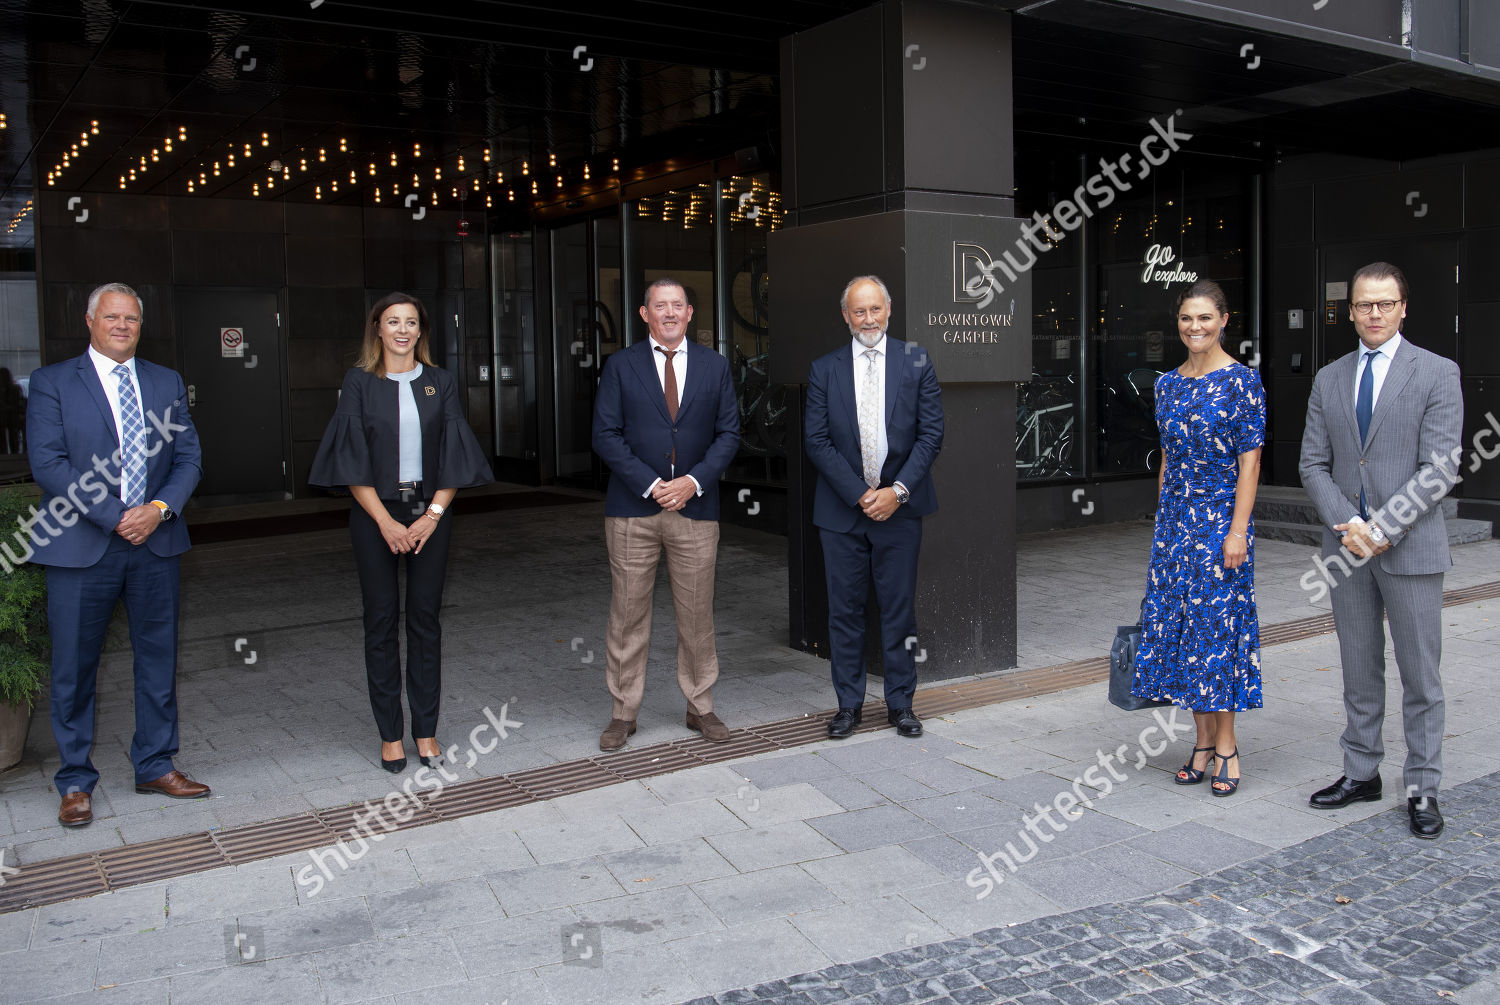 prince-daniel-and-crown-princess-victoria-at-visita-stockholm-sweden-shutterstock-editorial-10750019q.jpg